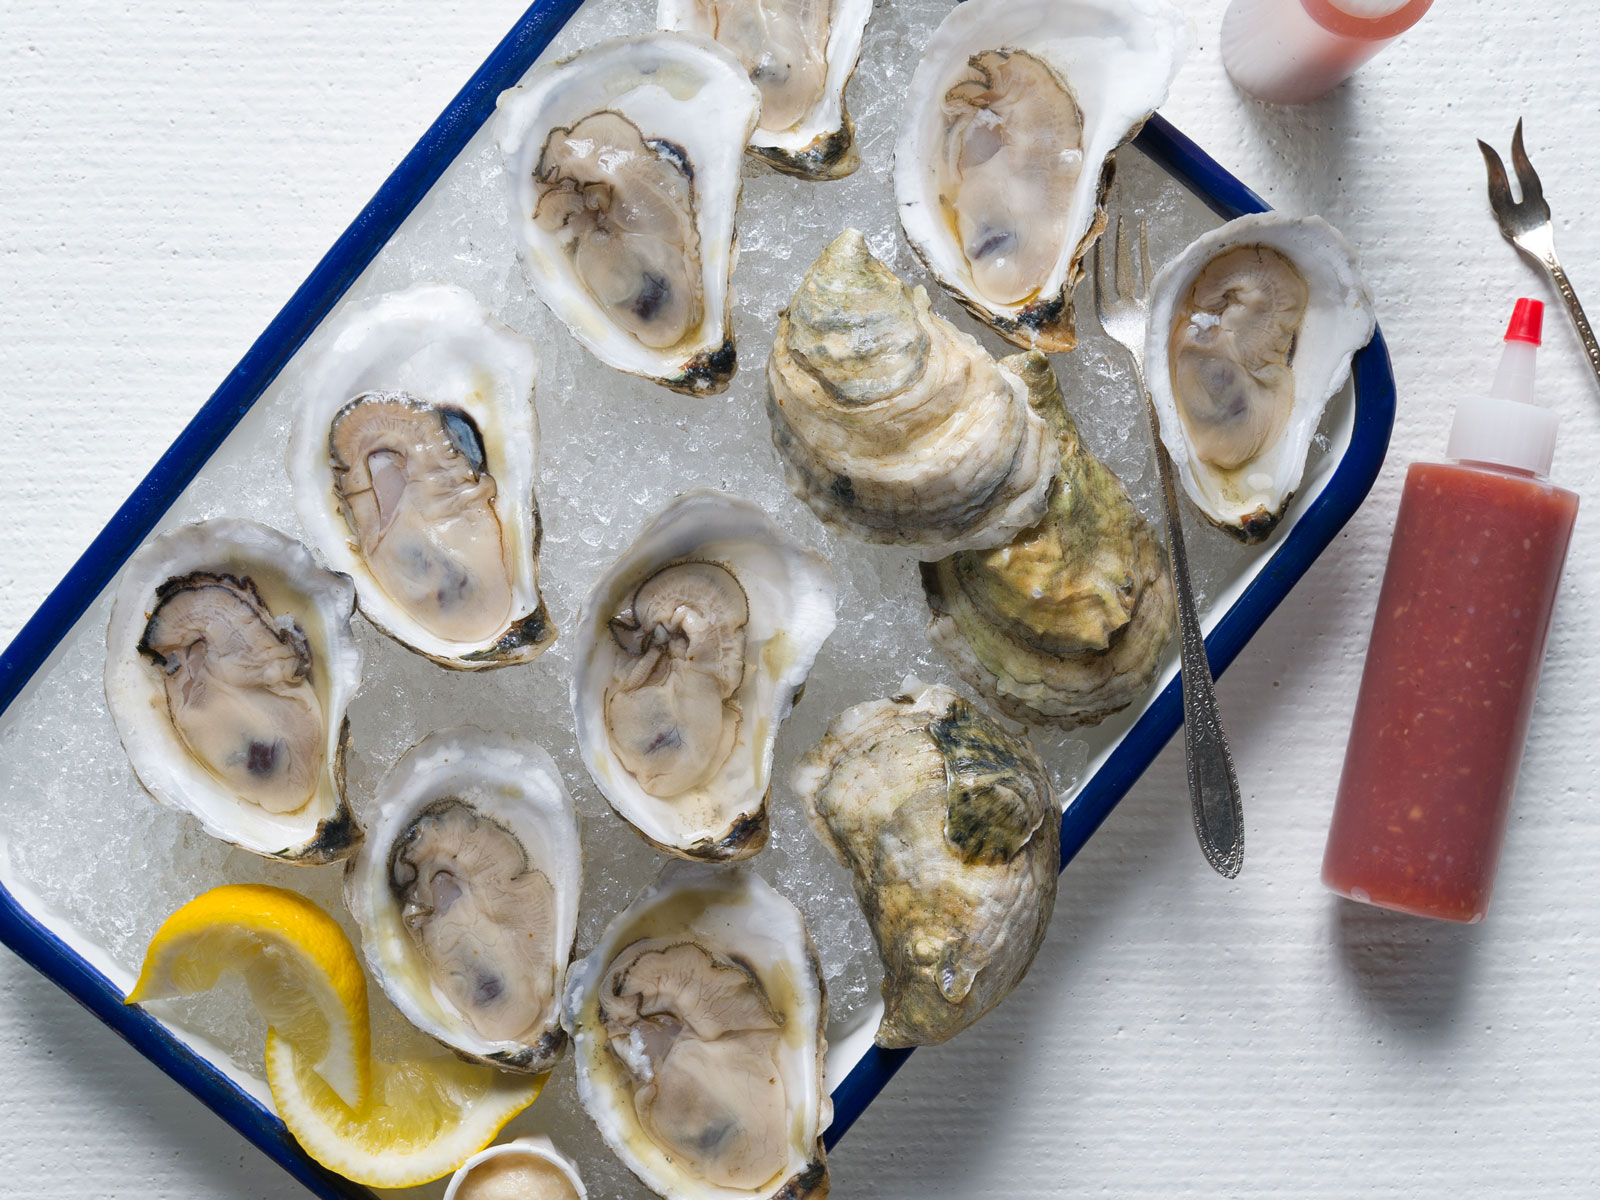 There's a Shellfish Showdown Starting in New England